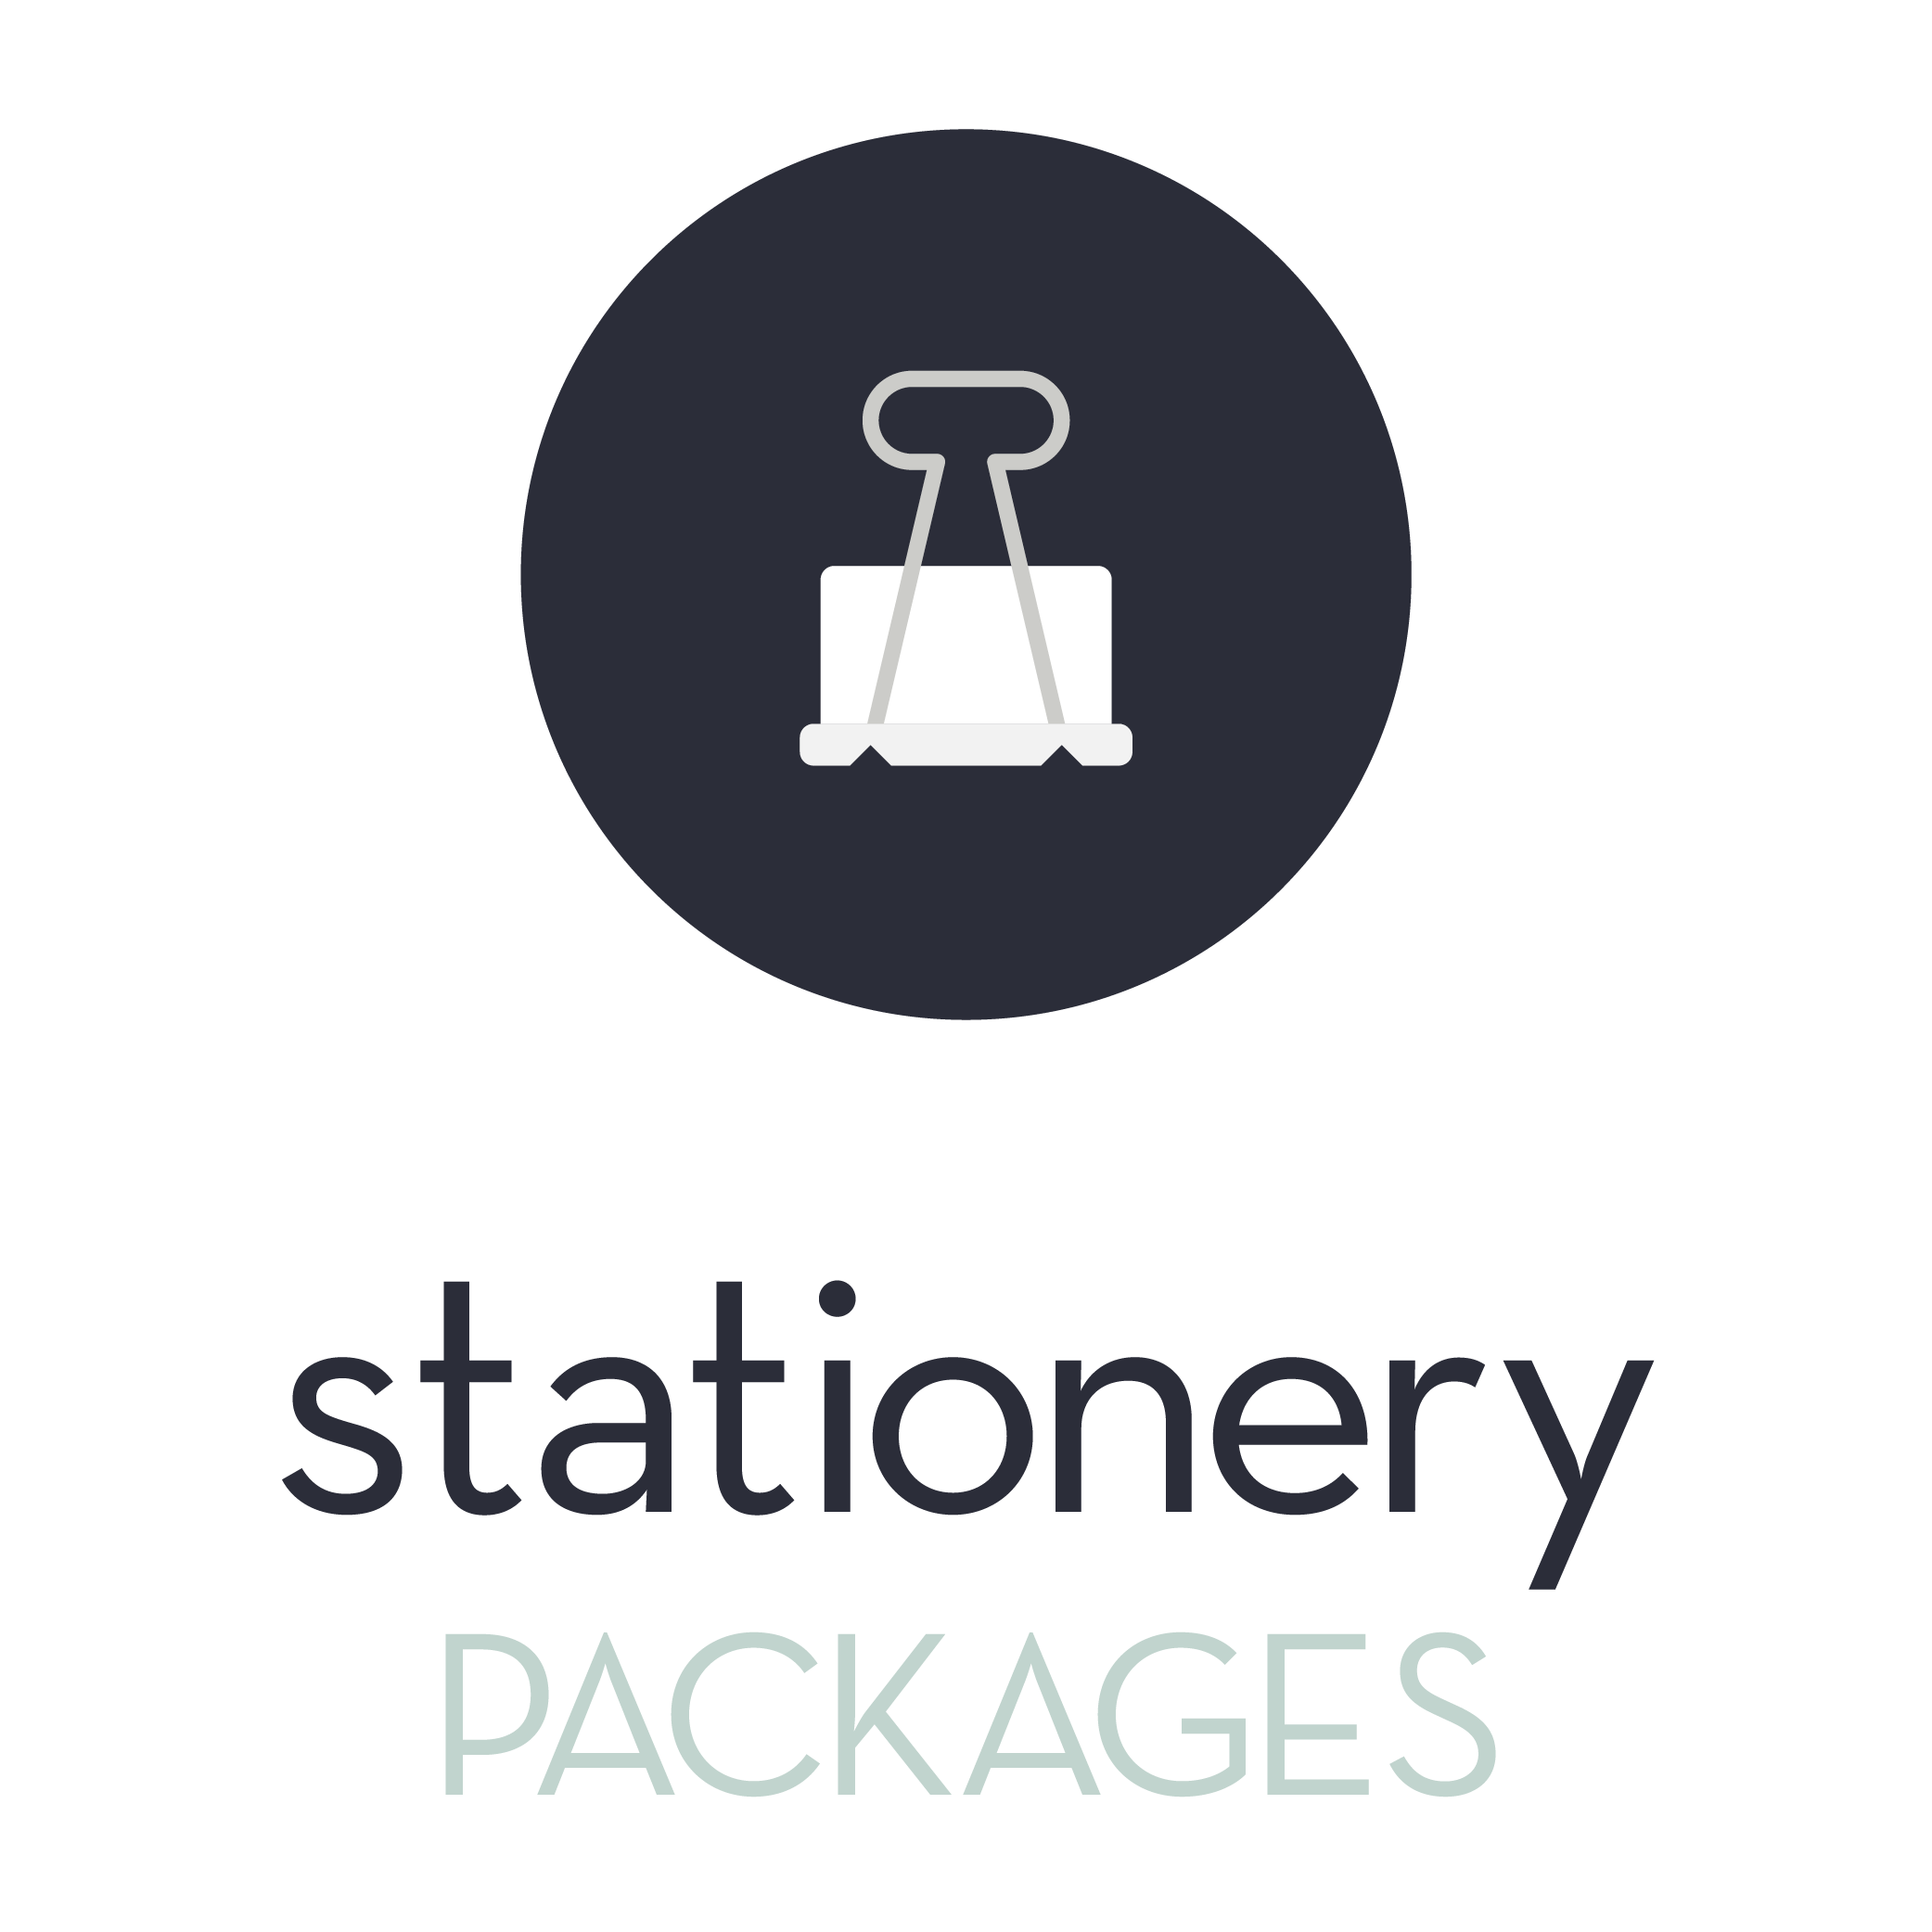 This package focuses on keeping your branding consistent throughout all of your stationery items. We will keep within your brand guidelines and design layouts that best compliment your brand. Printing of material is also available. Please inquire for more details. - • Business Cards• Letterheads• Envelopes• Notepads• Custom forms